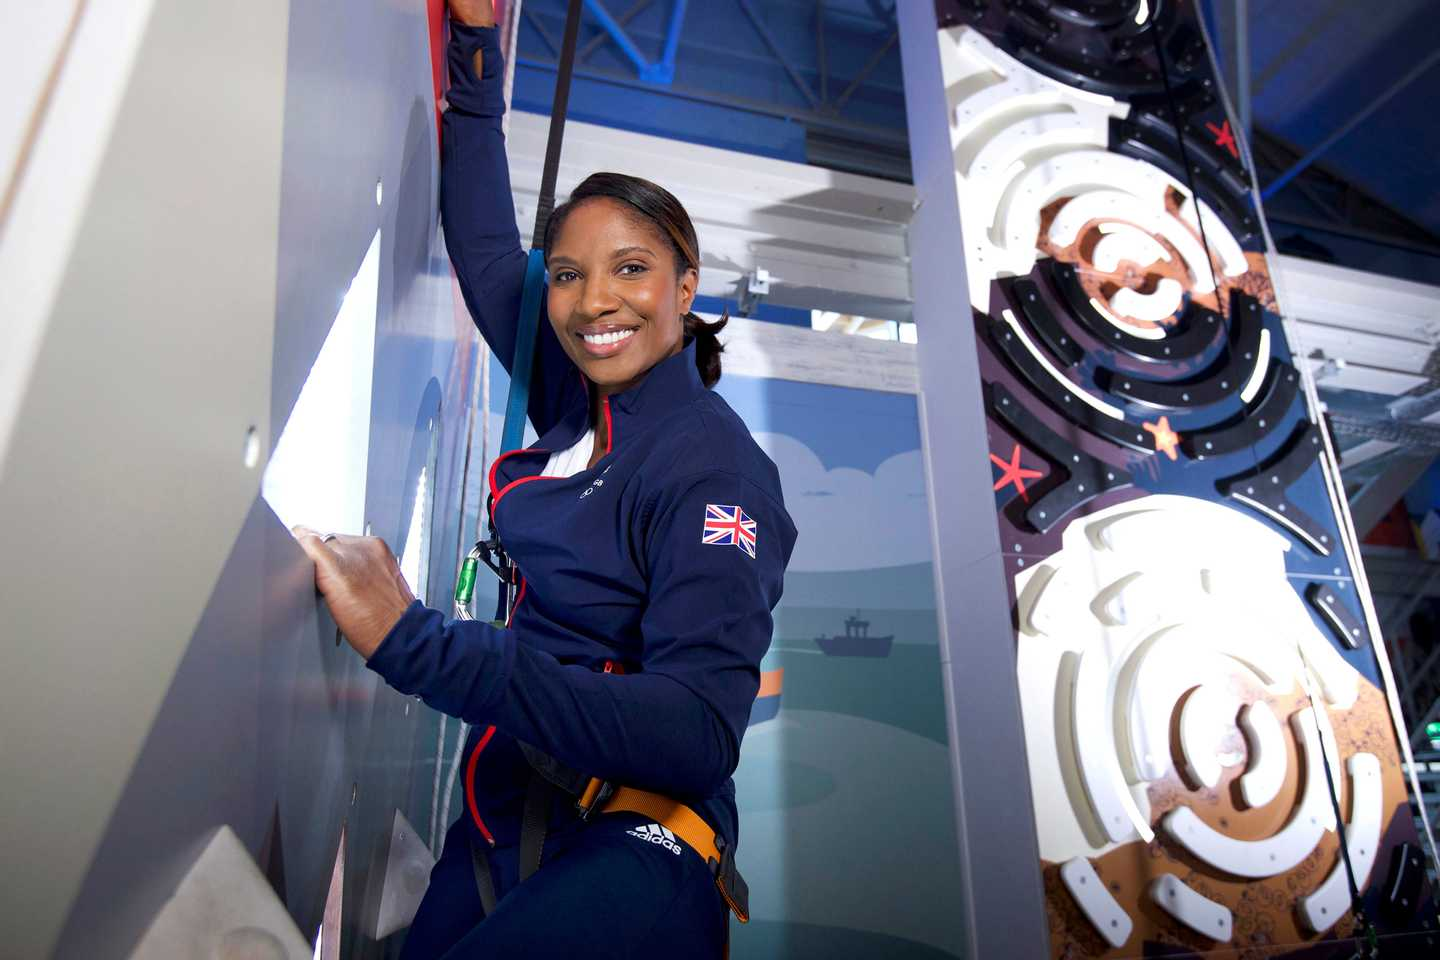 Denise Lewis takes on the Crazy Climber